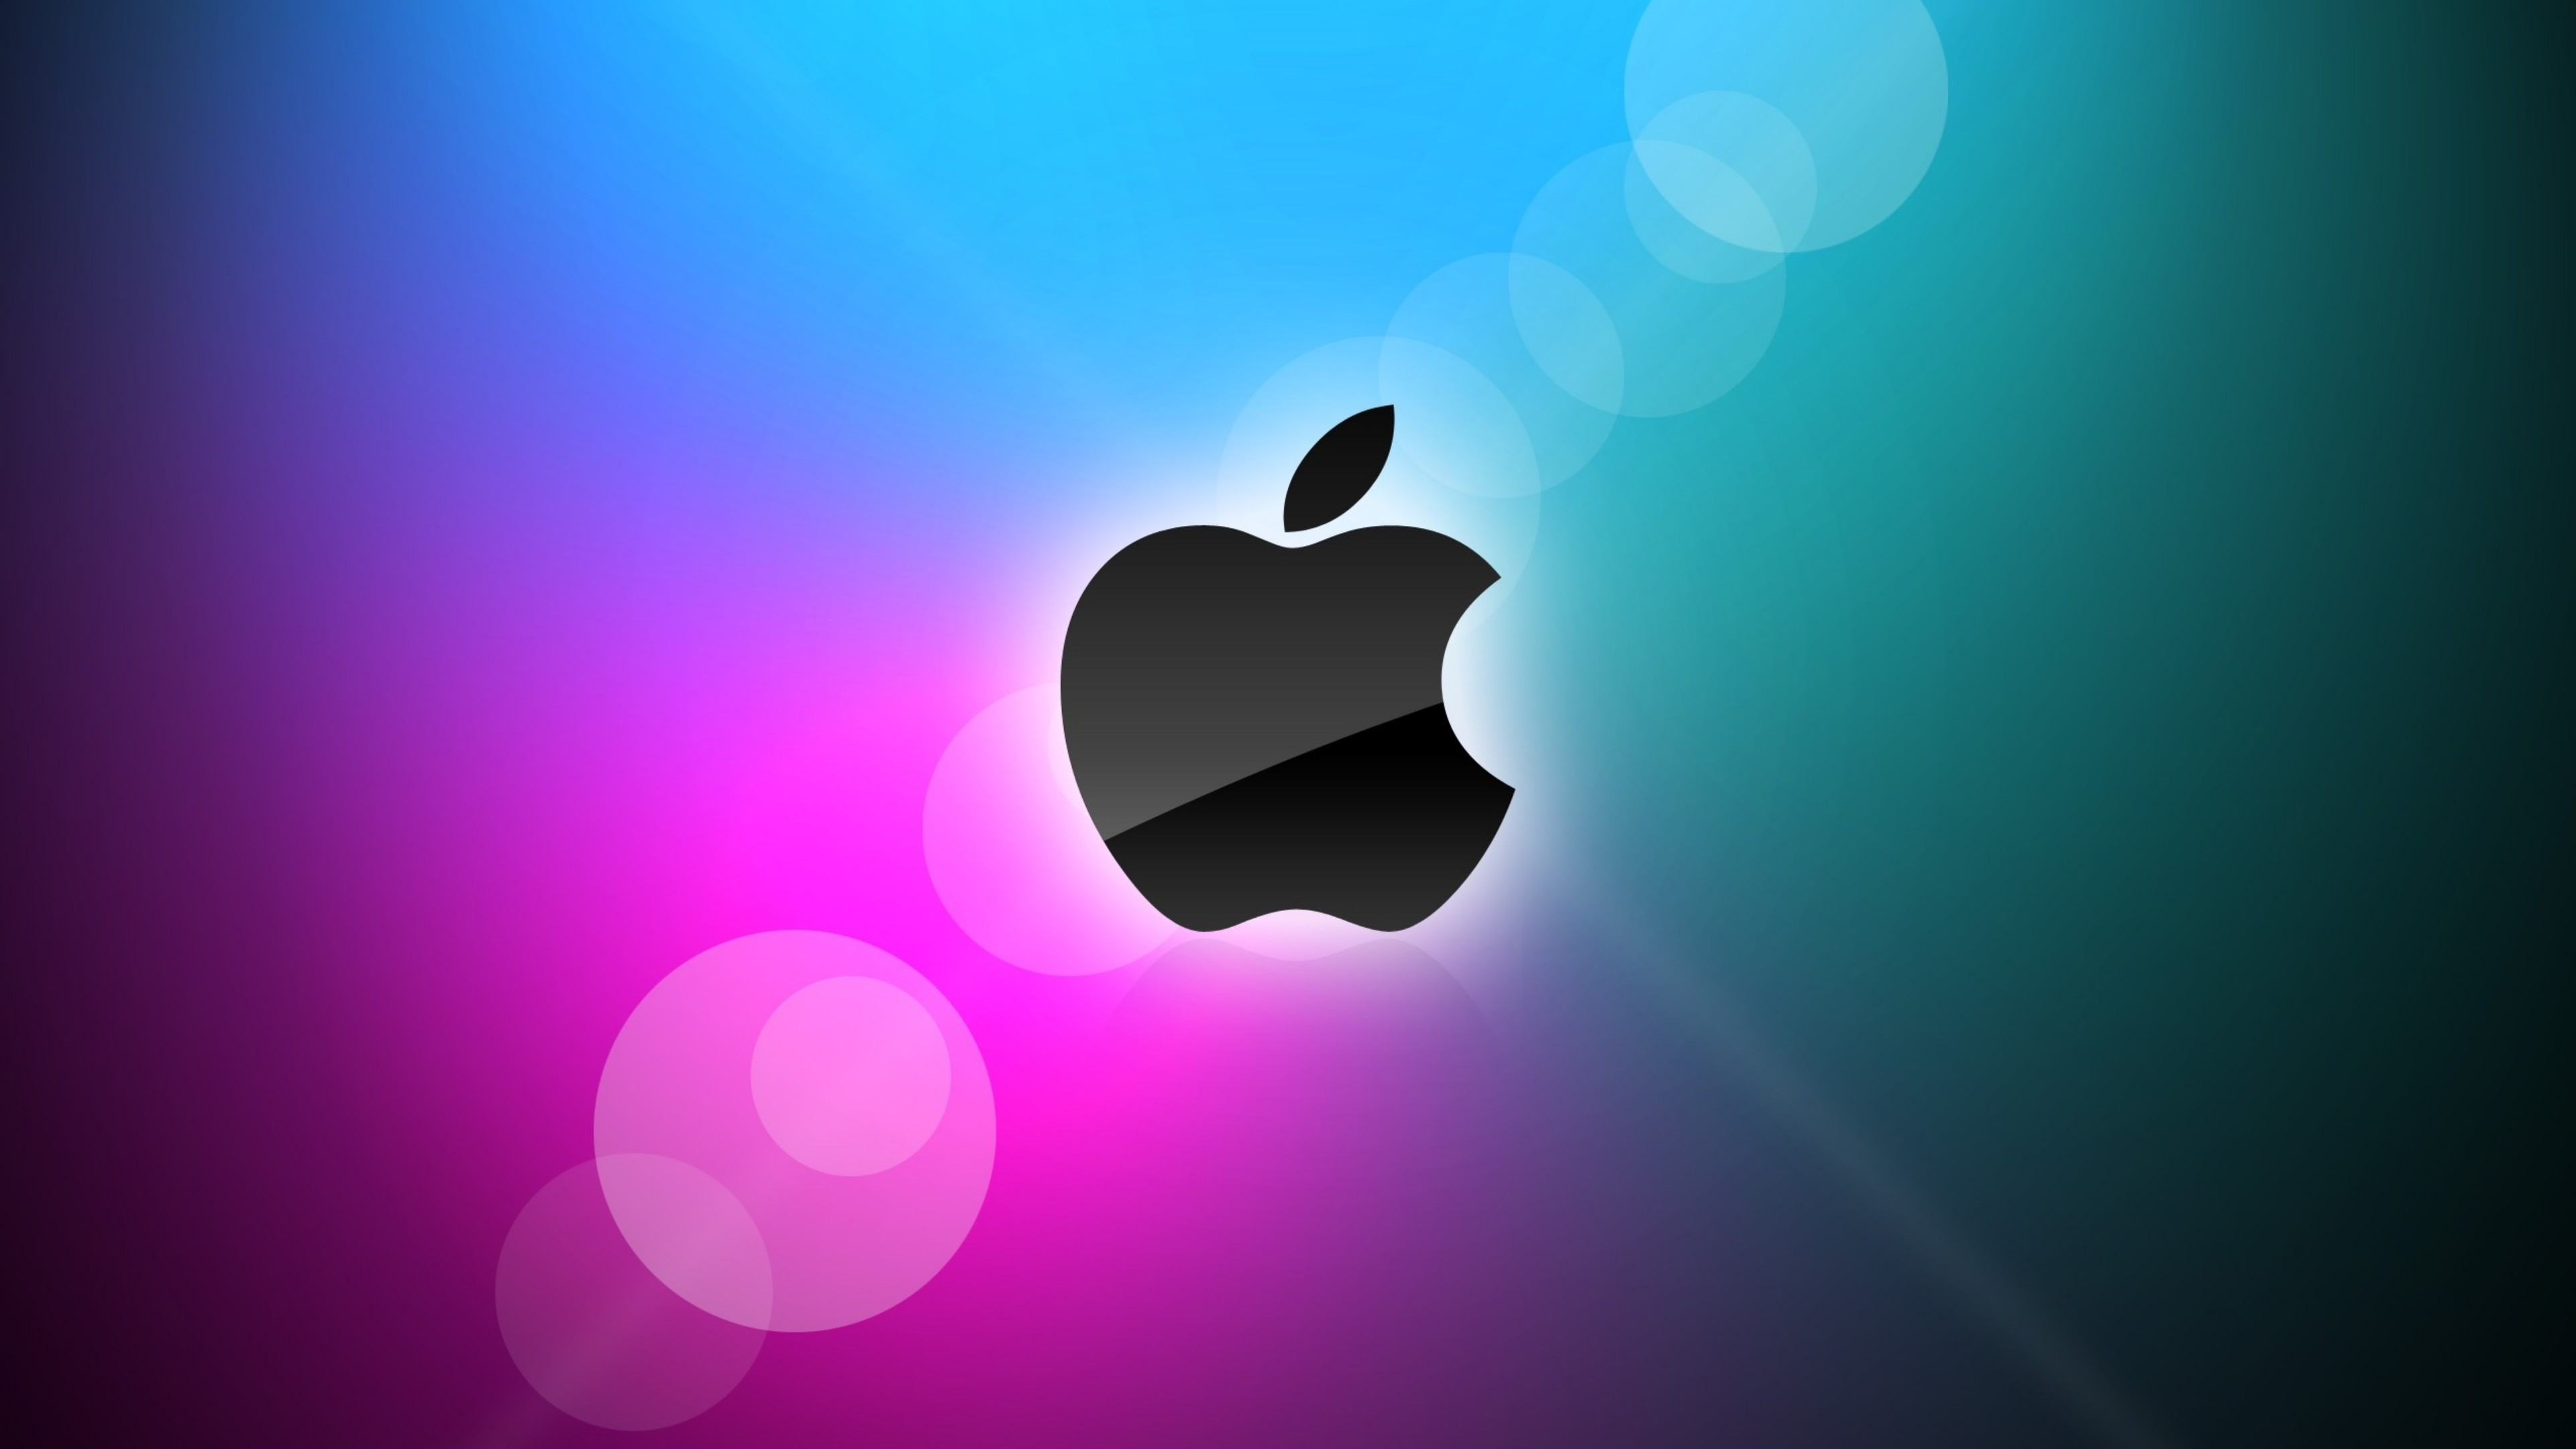 Cool Apple Logo Wallpaper (70+ pictures)